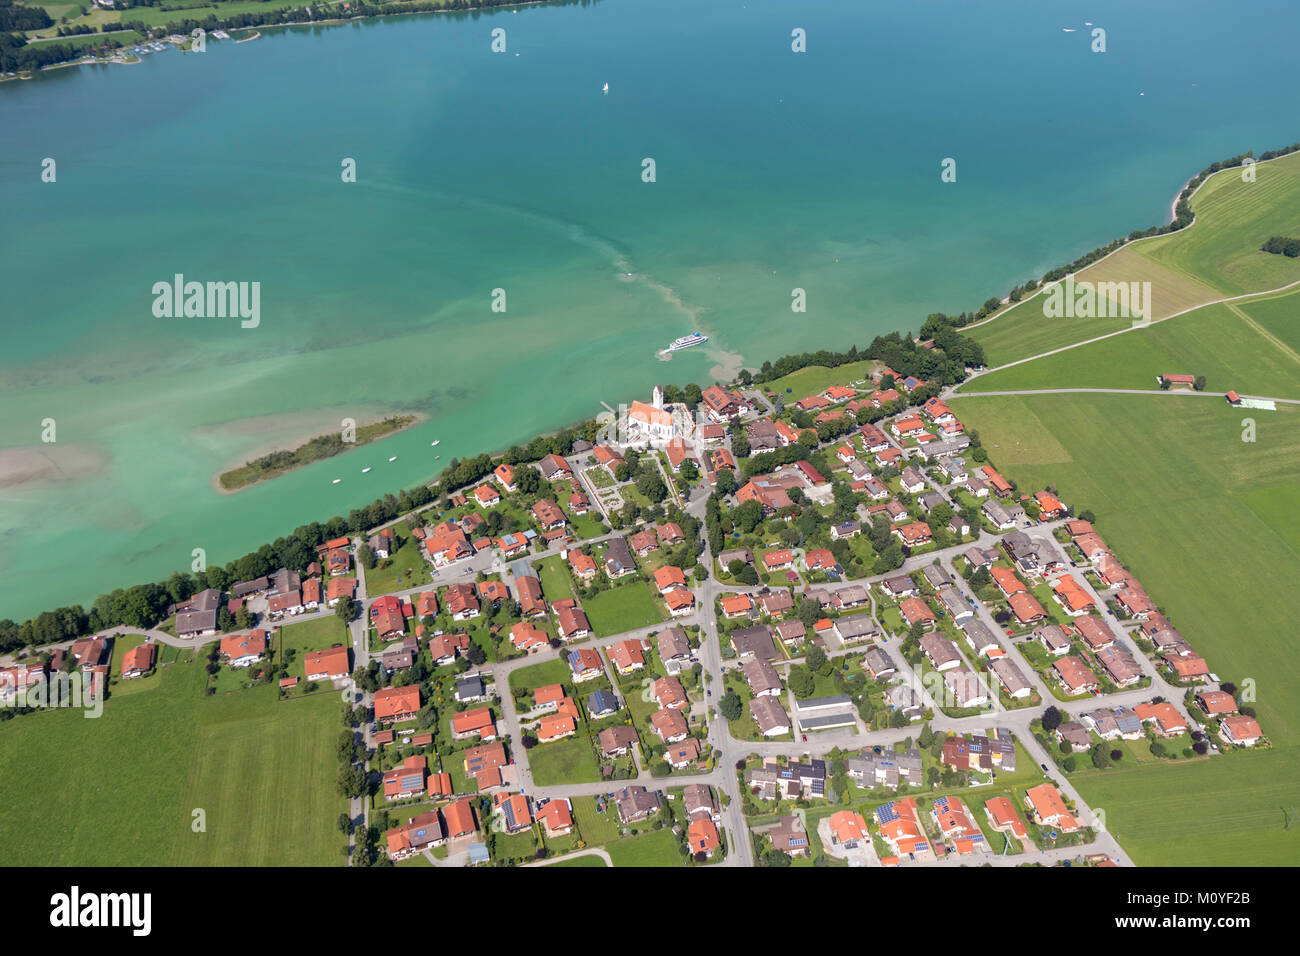 Aerial view of Waltenhofen, 87645 Schwangau, Bavaria, Germany - Stock Image